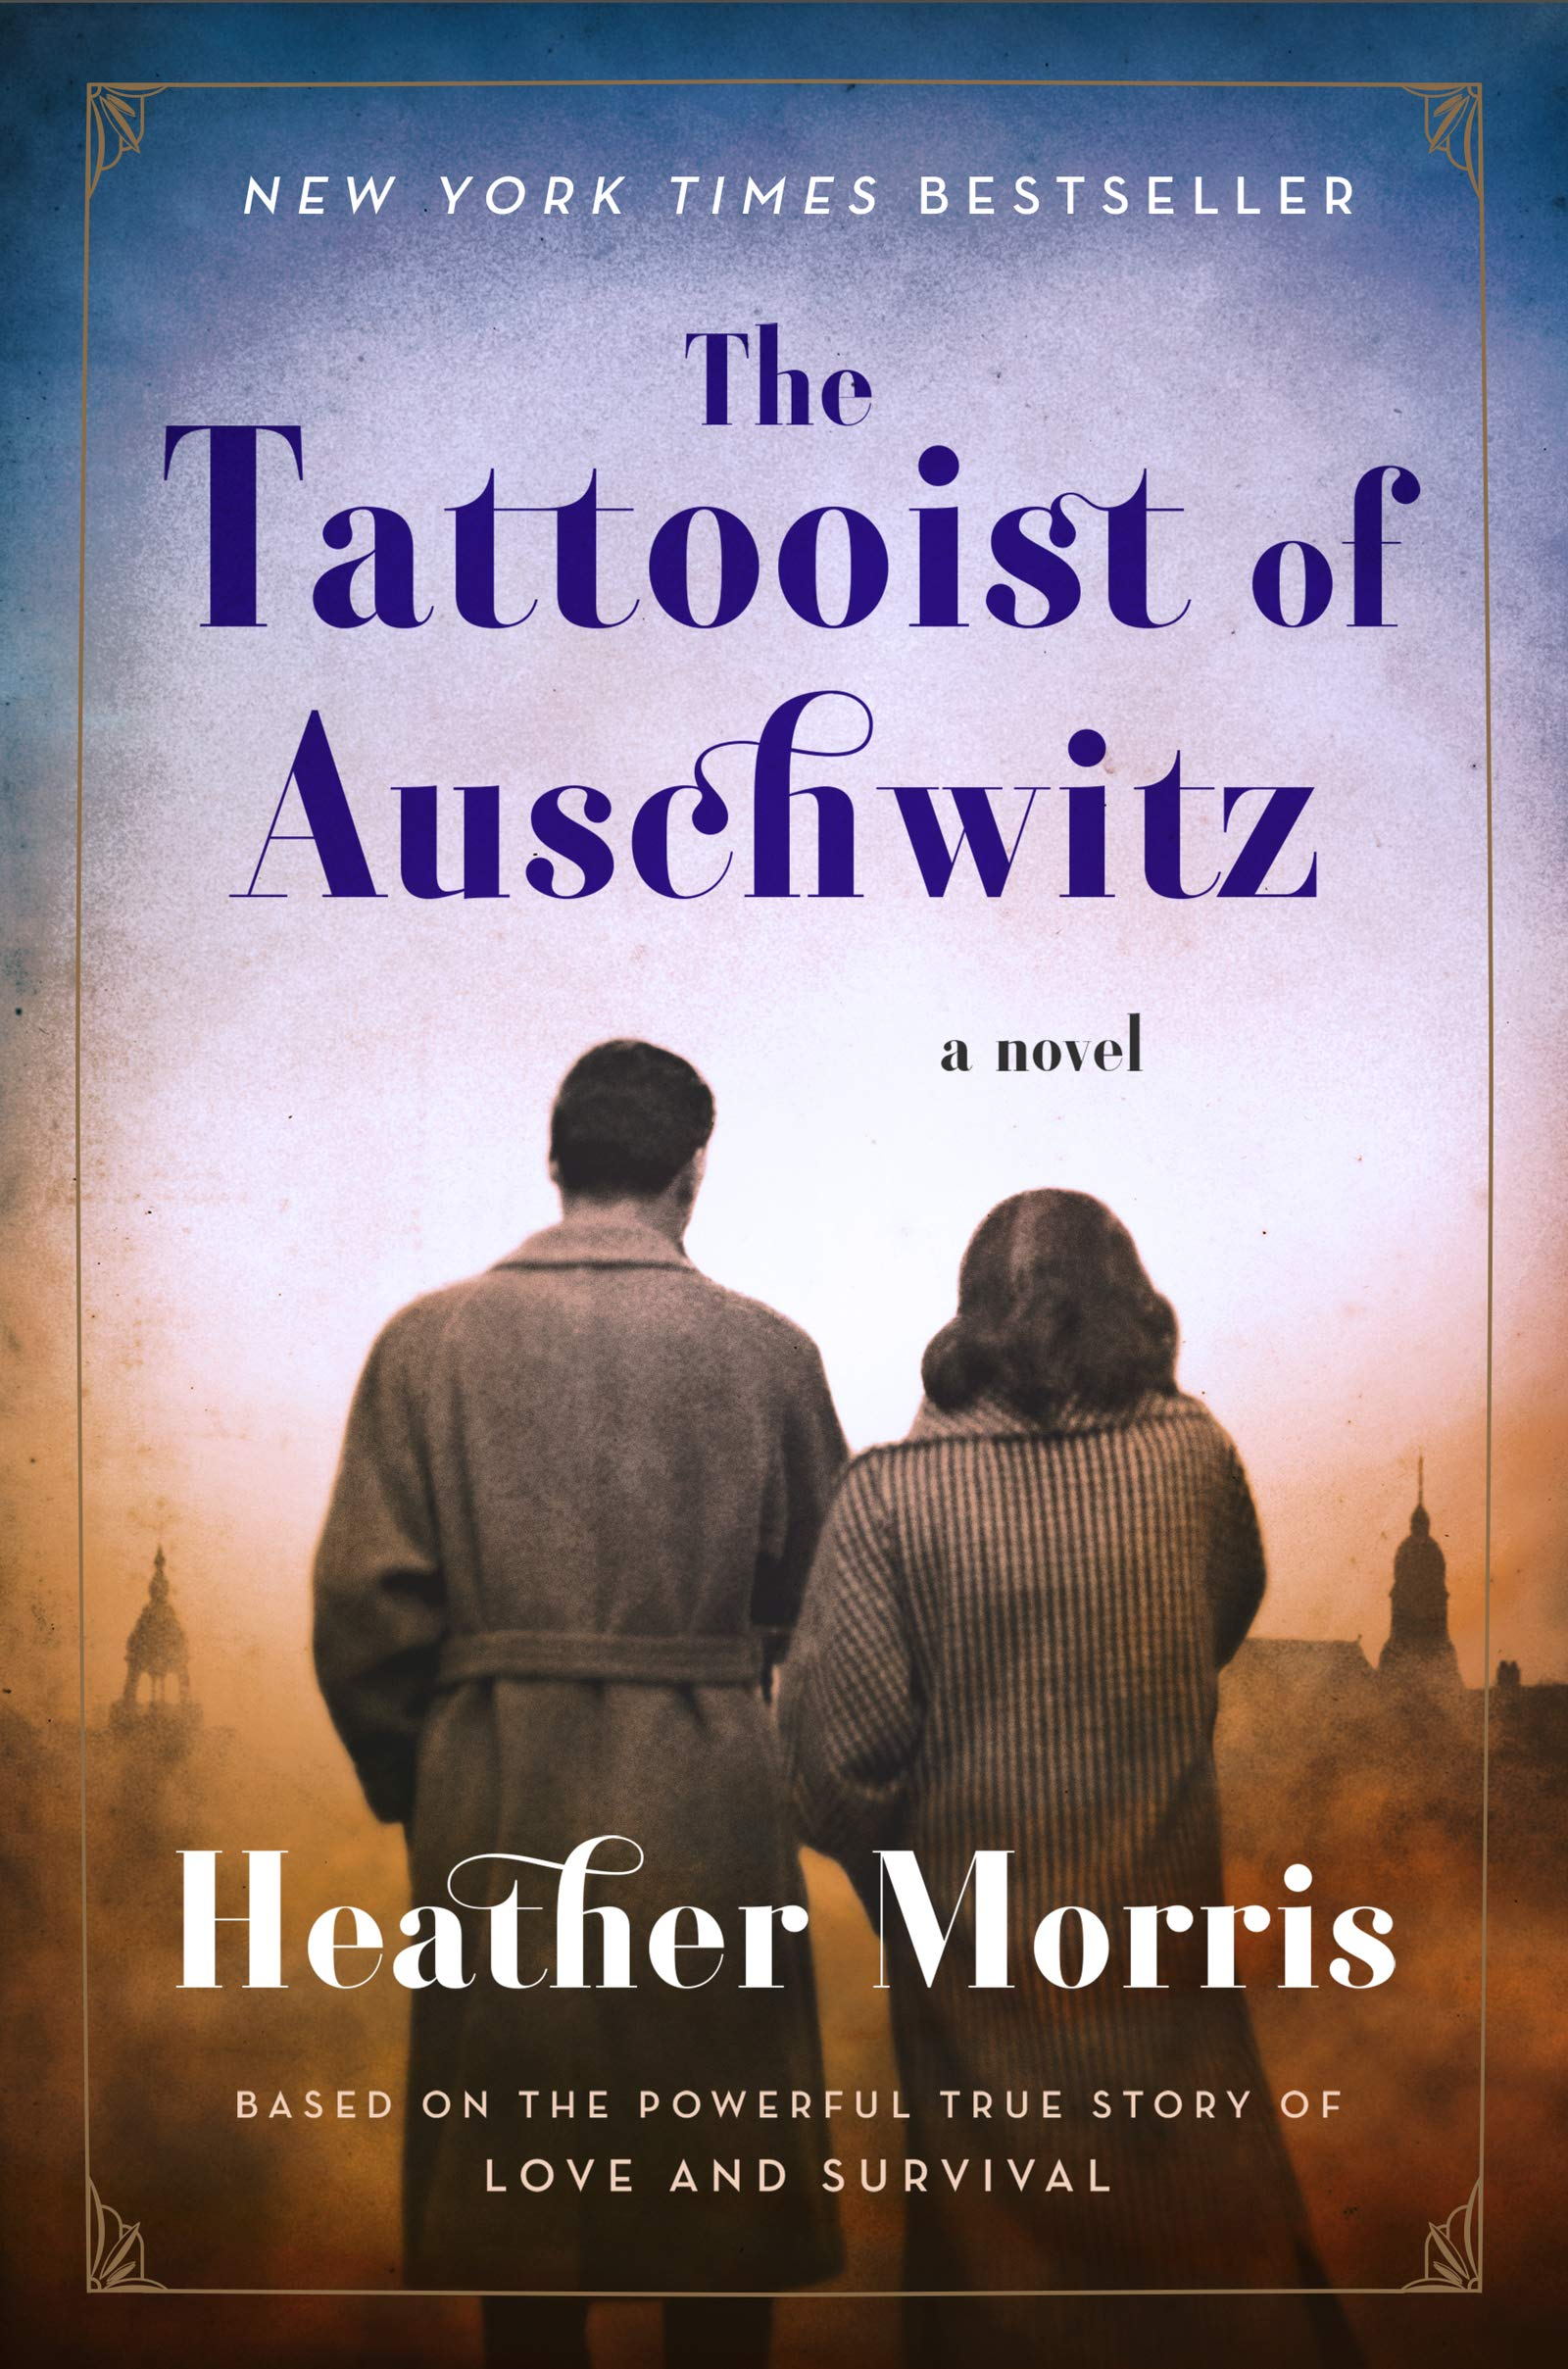 The Tattooist of Aushwitz - By Heather MorrisDescription: In April 1942, Lale Sokolov, a Slovakian Jew, is forcibly transported to the concentration camps at Auschwitz-Birkenau. When his captors discover that he speaks several languages, he is put to work as a Tätowierer (the German word for tattooist), tasked with permanently marking his fellow prisoners.Imprisoned for over two and a half years, Lale witnesses horrific atrocities and barbarism—but also incredible acts of bravery and compassion. Risking his own life, he uses his privileged position to exchange jewels and money from murdered Jews for food to keep his fellow prisoners alive.